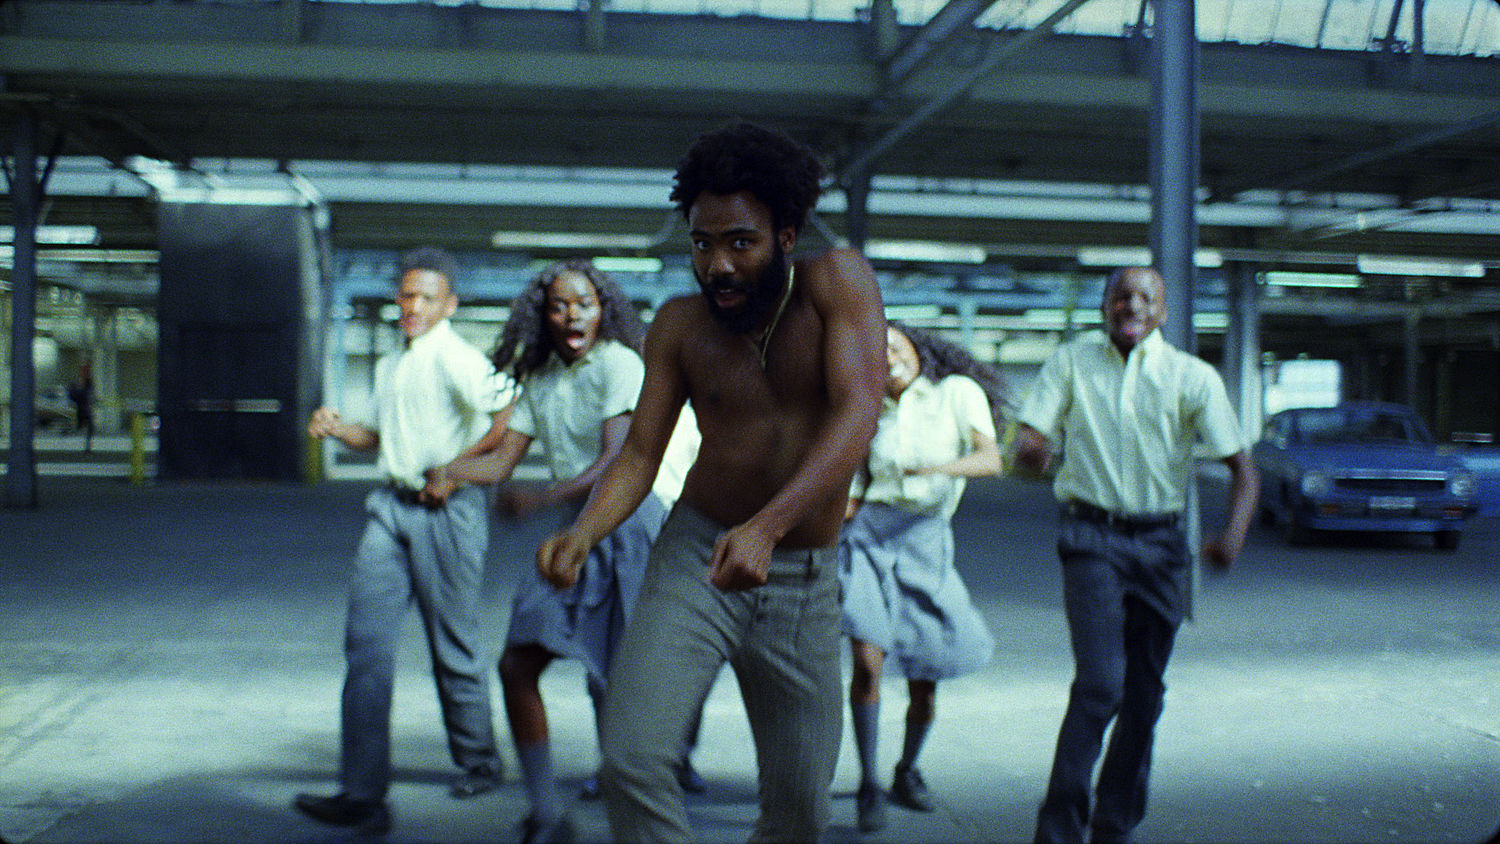 This Is America by Childish Gambino, directed by Hiro Murai